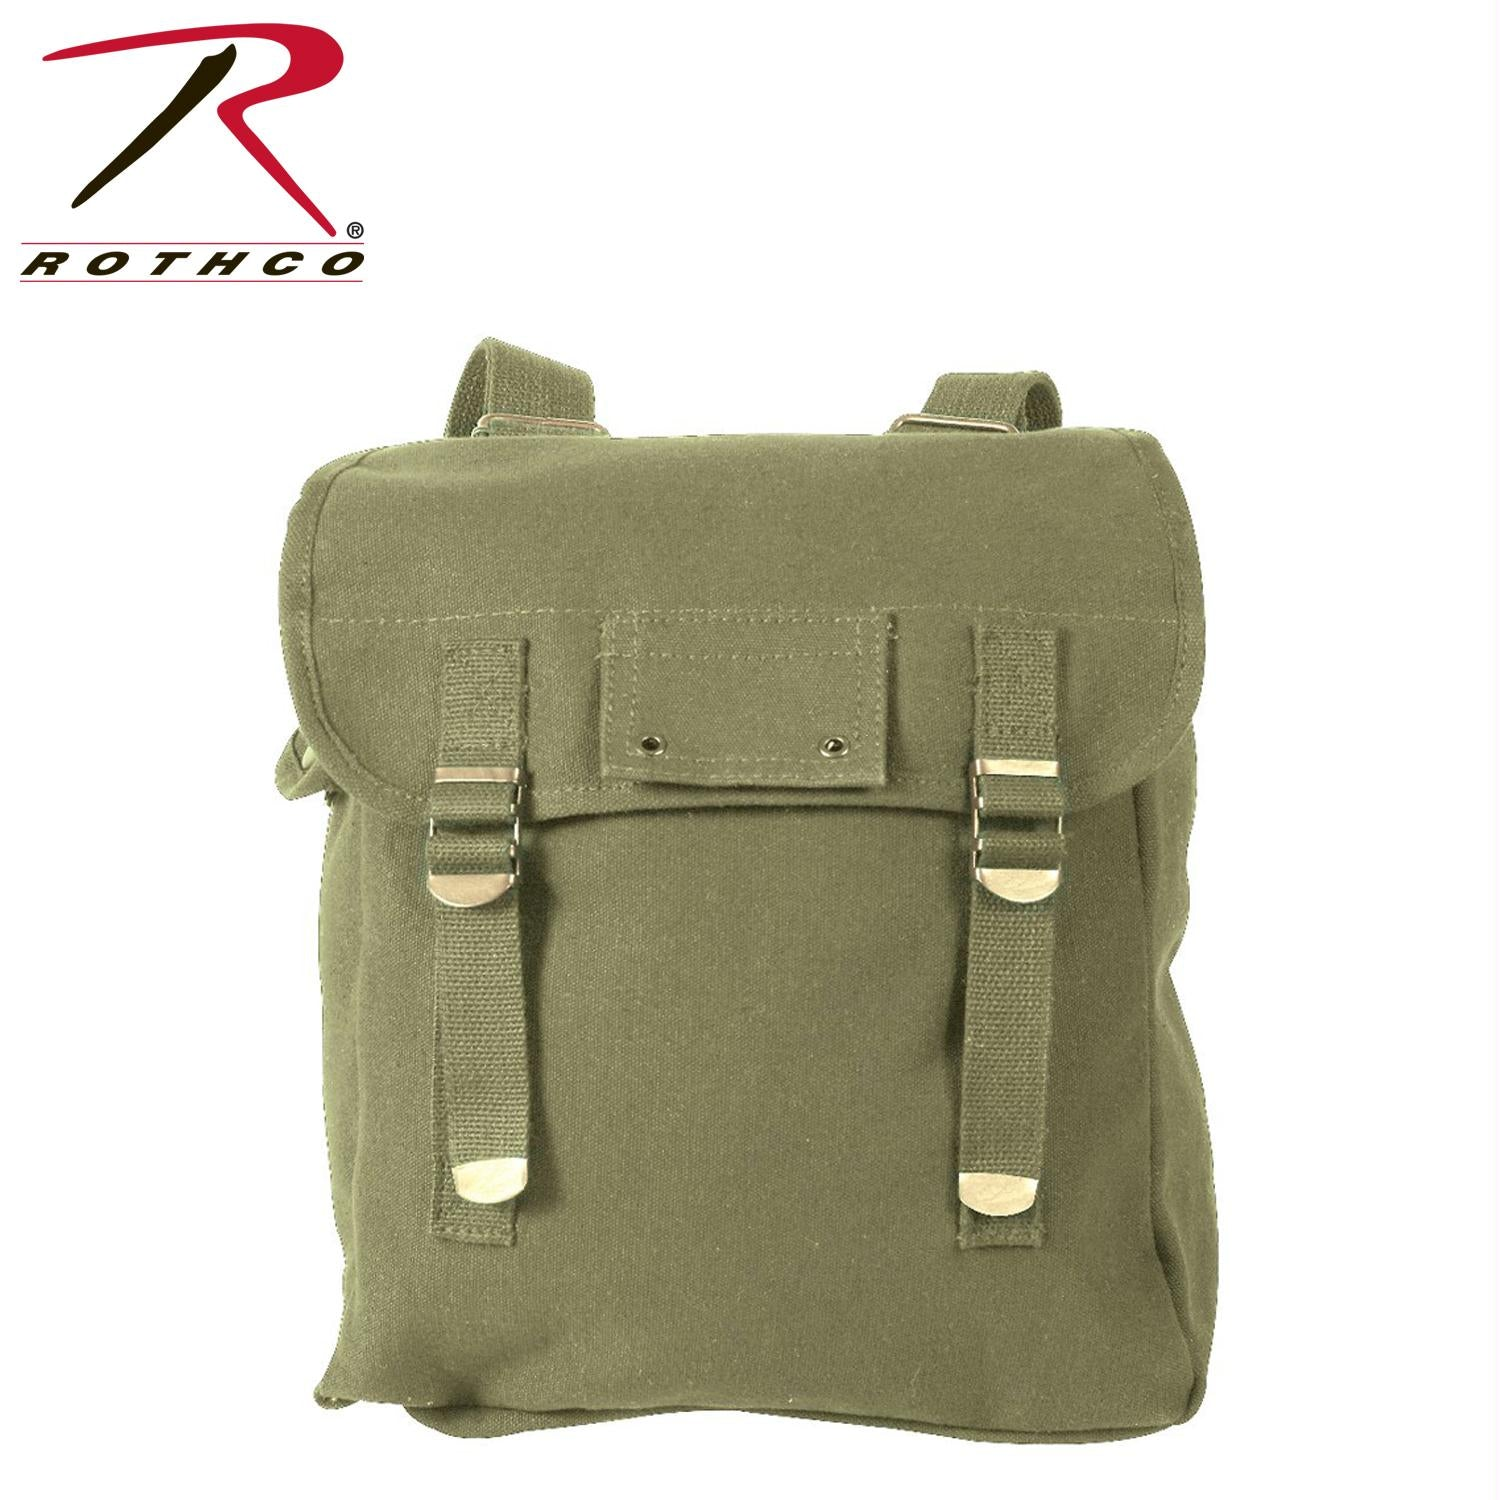 Rothco Heavyweight Canvas Musette Bag